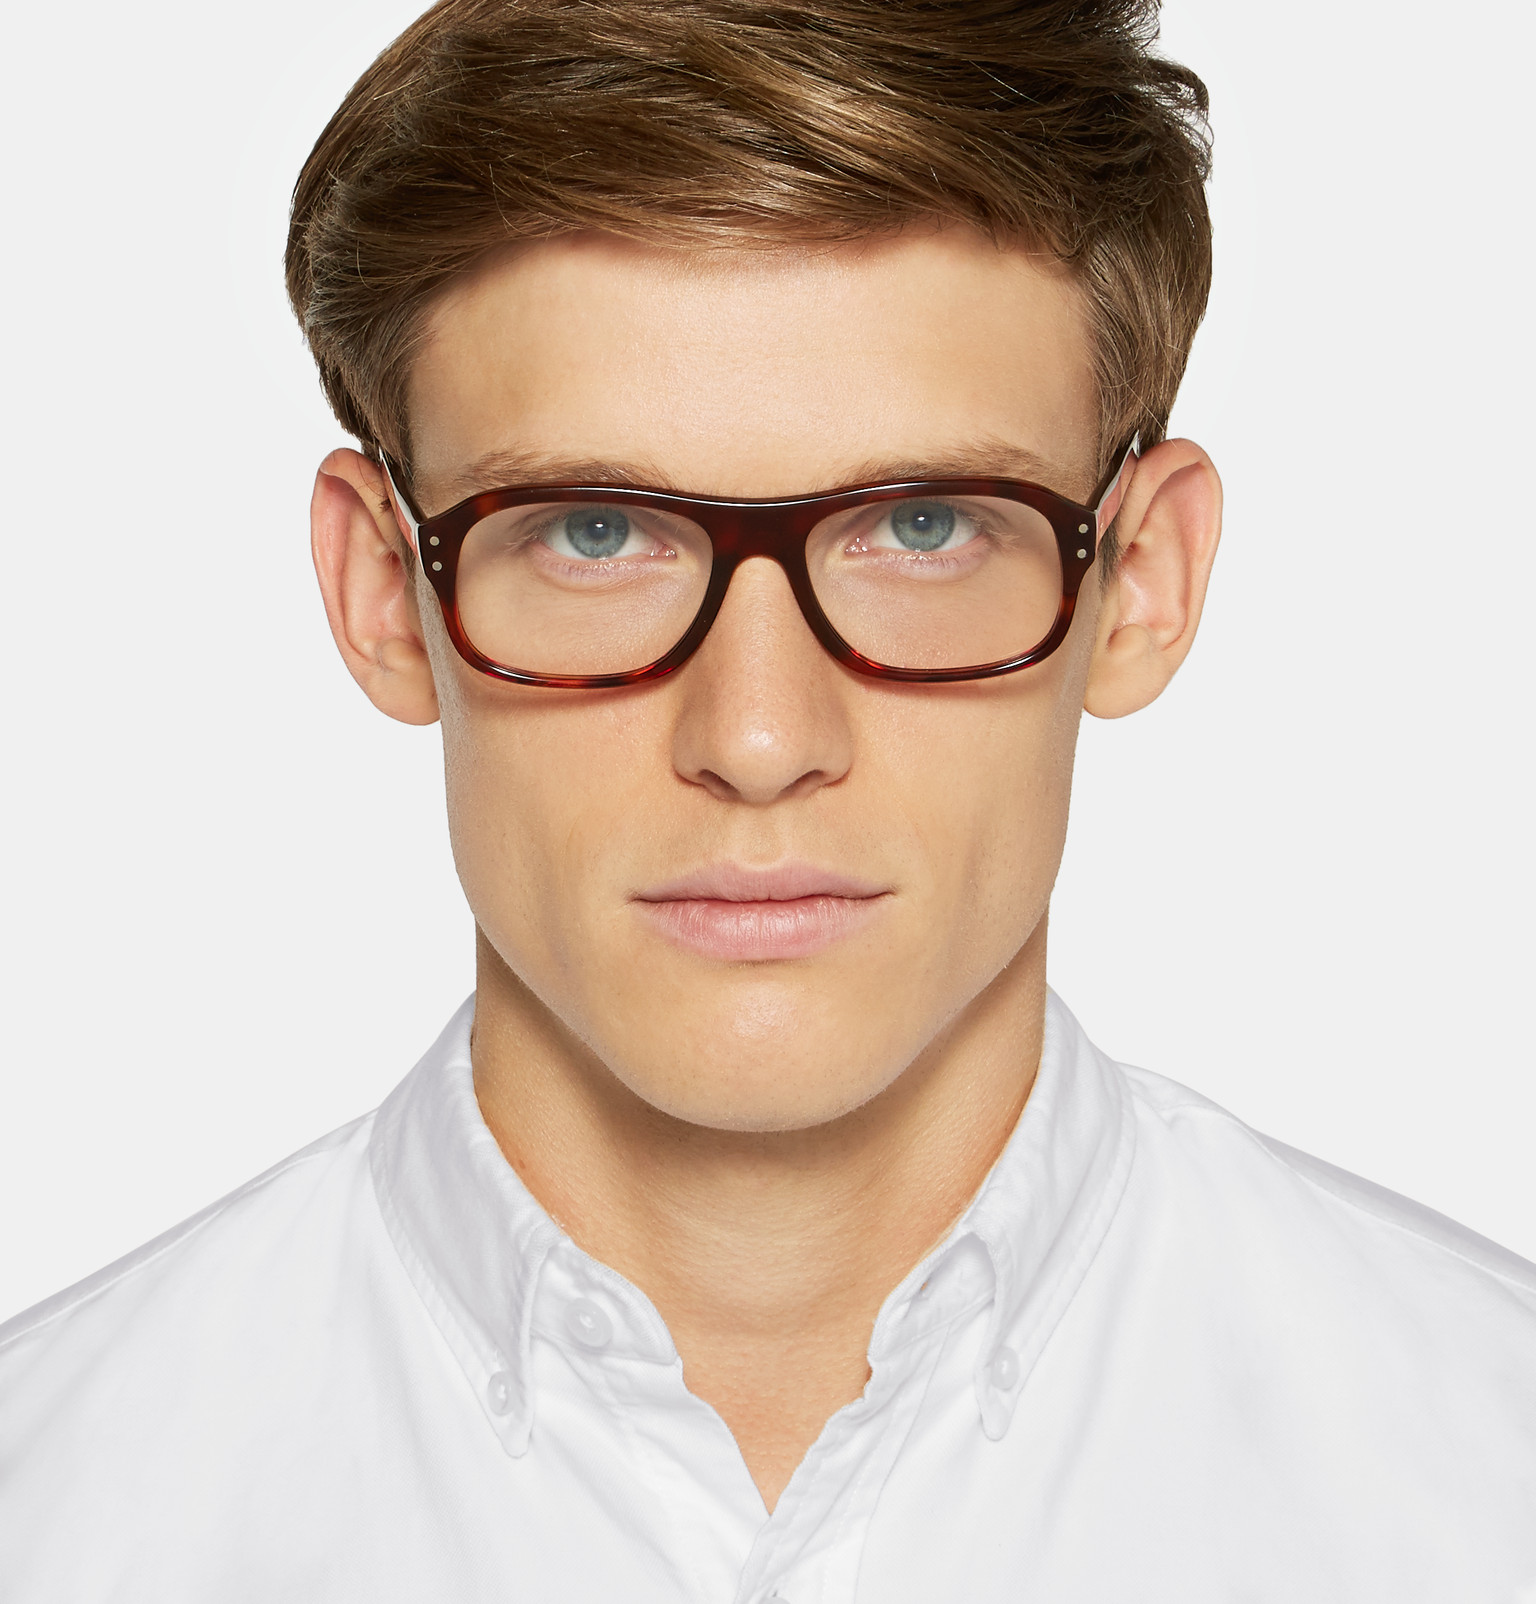 1ae4872e52 Kingsman+ Cutler and Gross Square-Frame Tortoiseshell Acetate Optical  Glasses